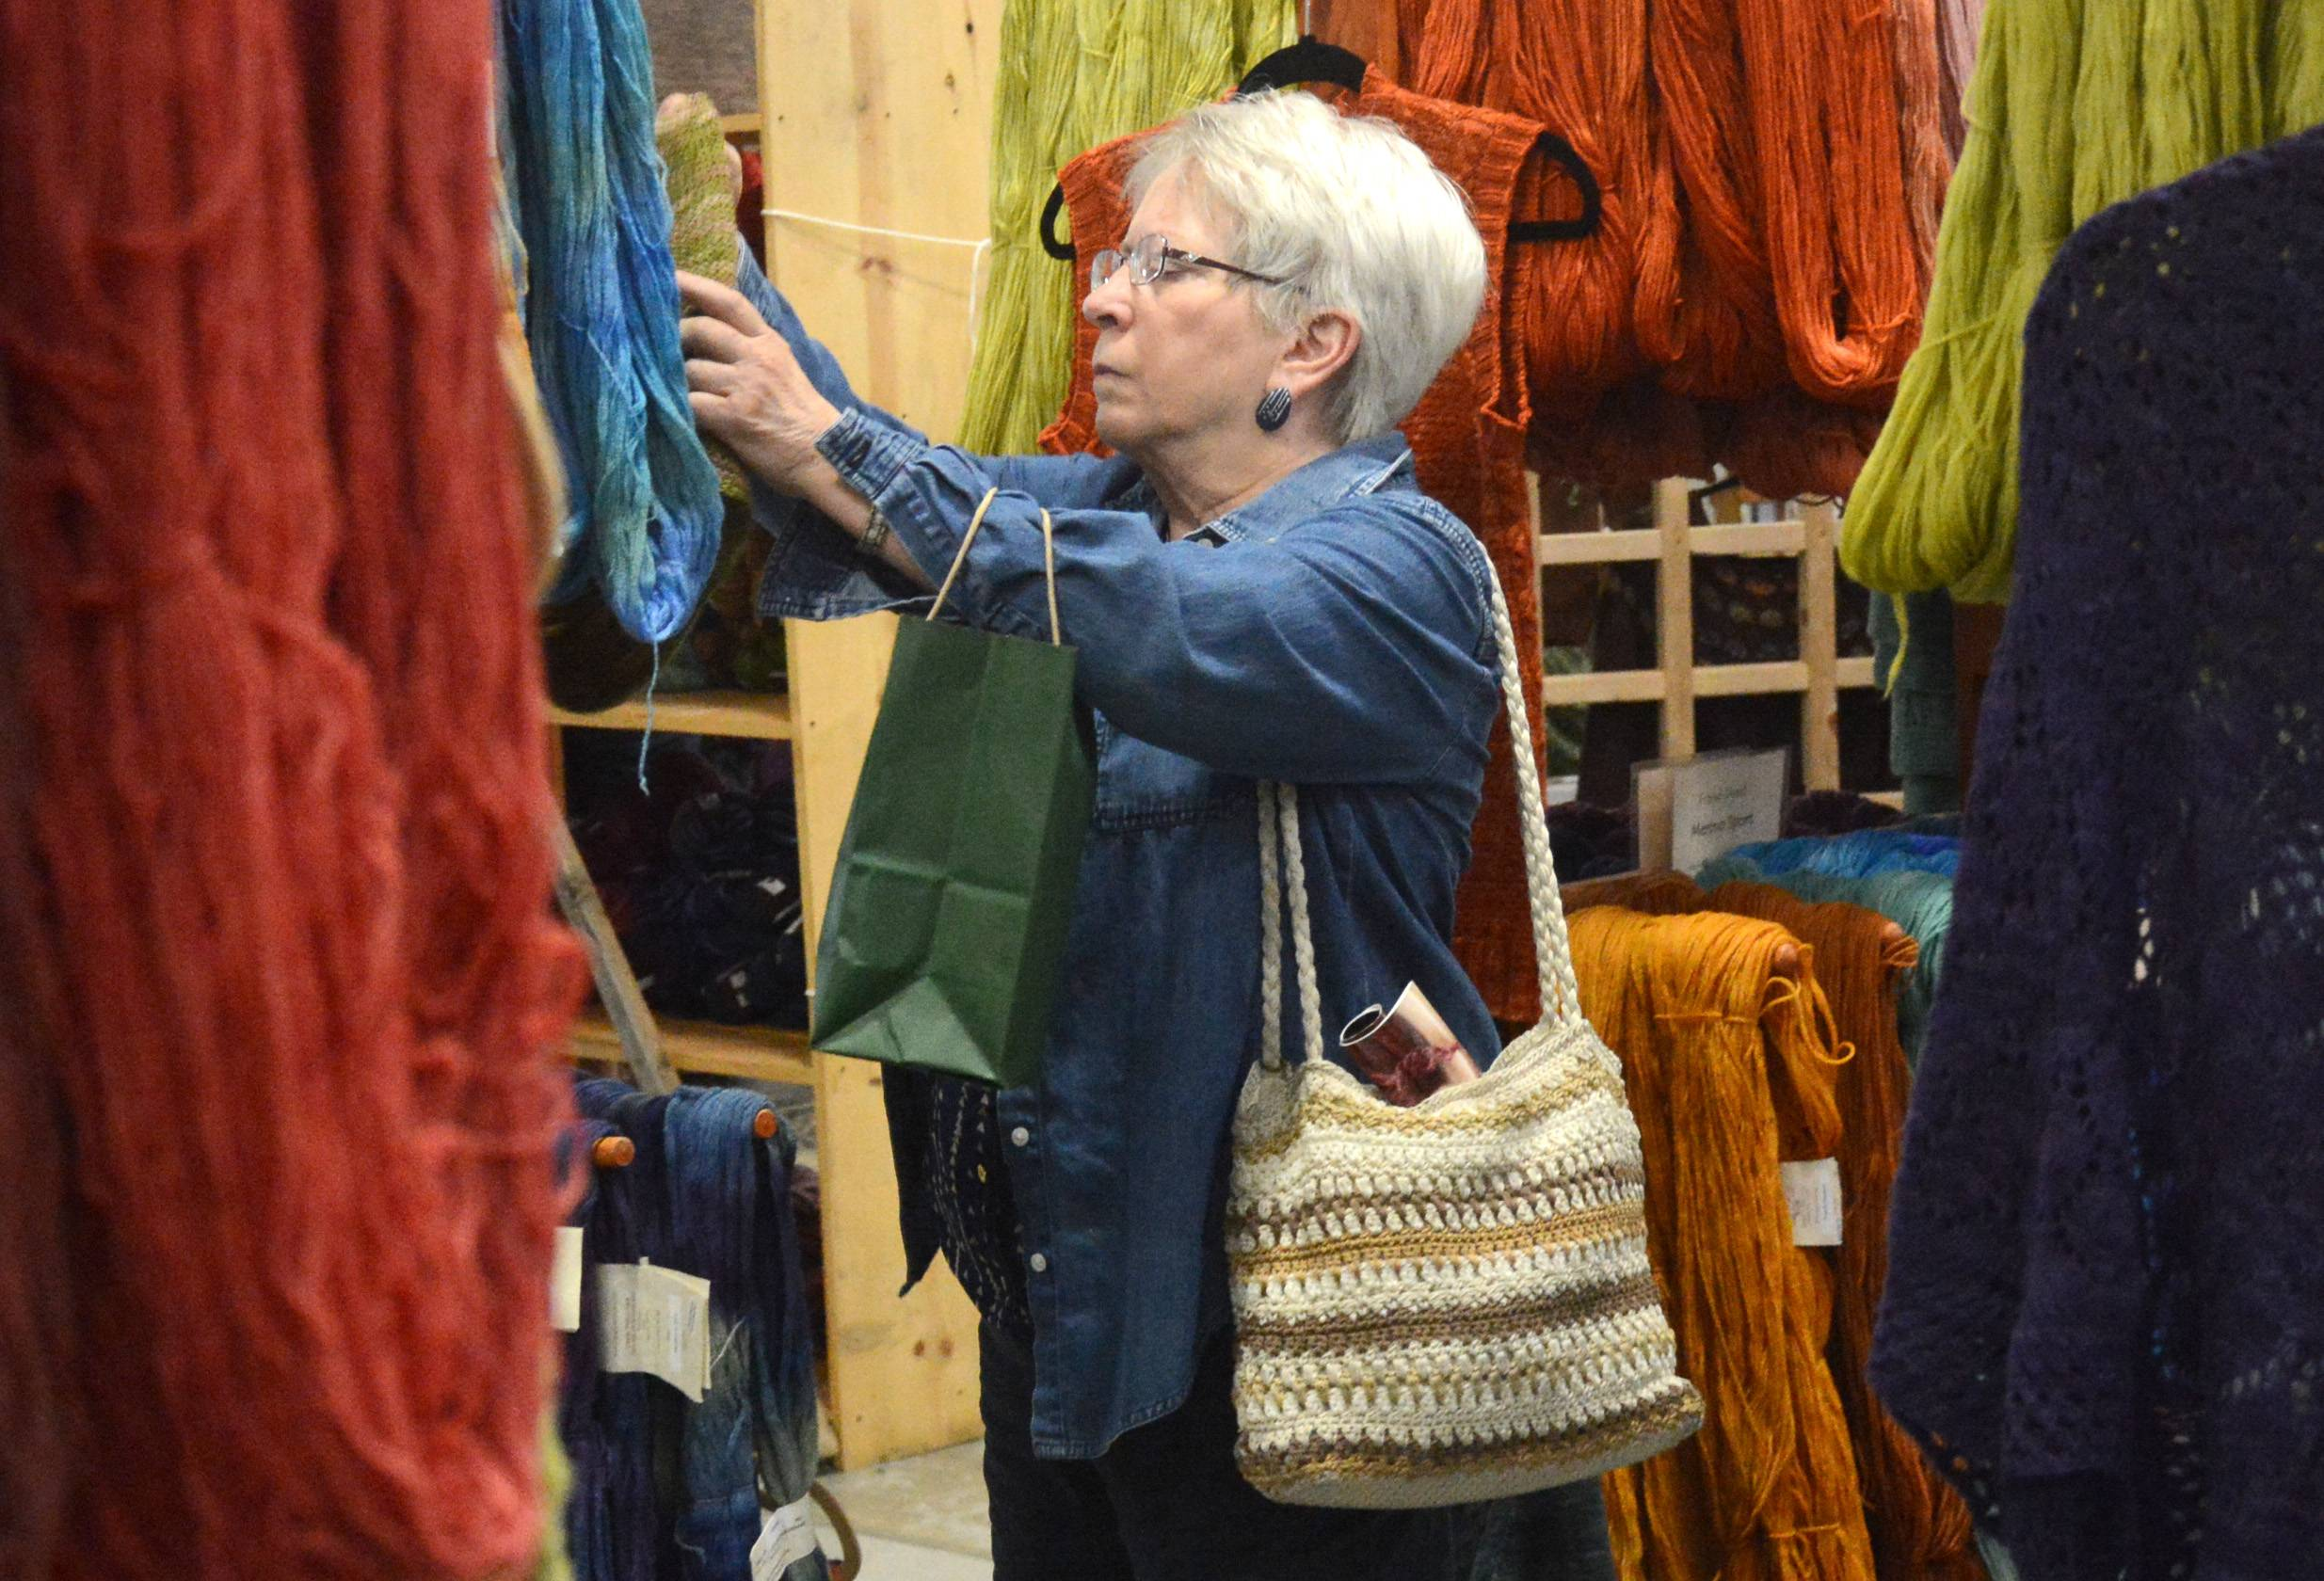 Barbara Lies of Madison, Wisconsin, looks through rows of yarn at last year's Midwest Fiber and Folk Art Fair in Grayslake. This year's fair will be from 10 a.m. to 6 p.m. Friday, Aug. 1, and Saturday, Aug. 2, and 10 a.m. to 4 p.m. Sunday, Aug. 3, at the Lake County Fairgrounds.